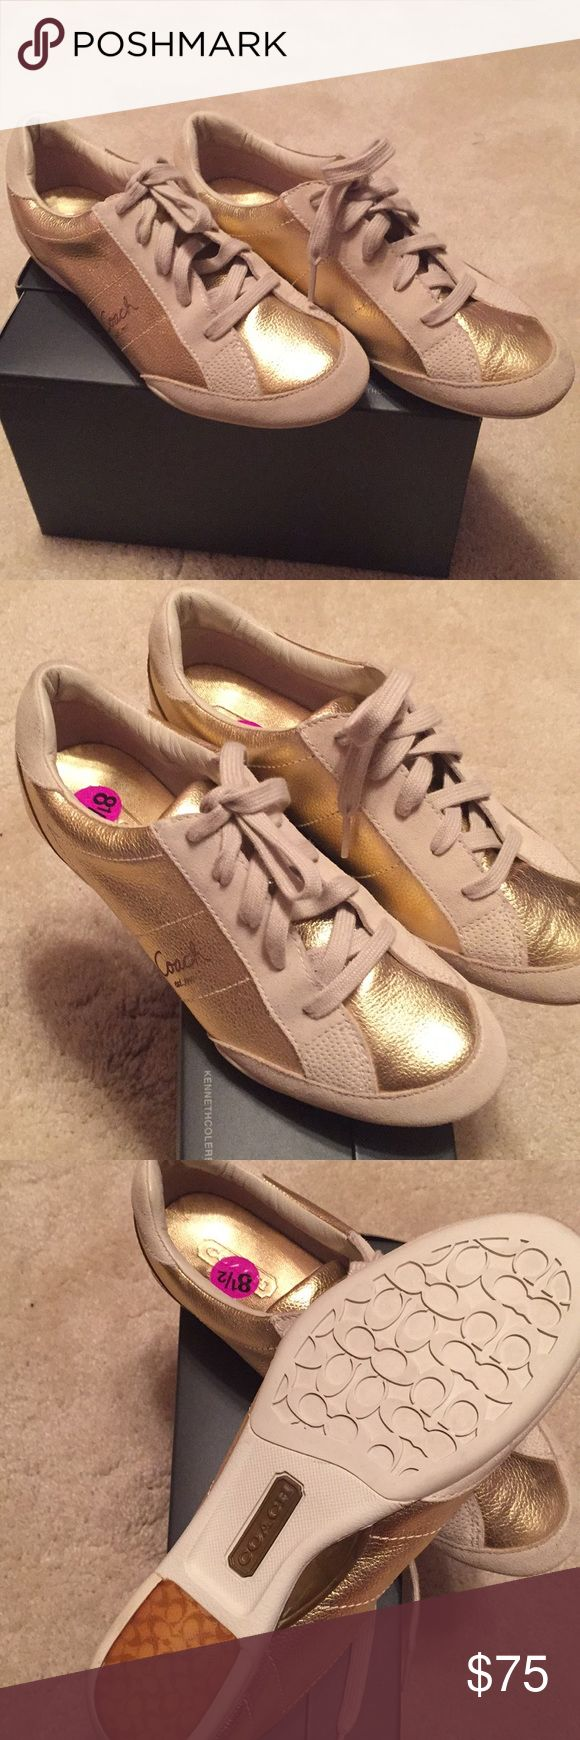 Coach tennis shoes Gold Leather tennis shoes/sneakers Coach Shoes Sneakers